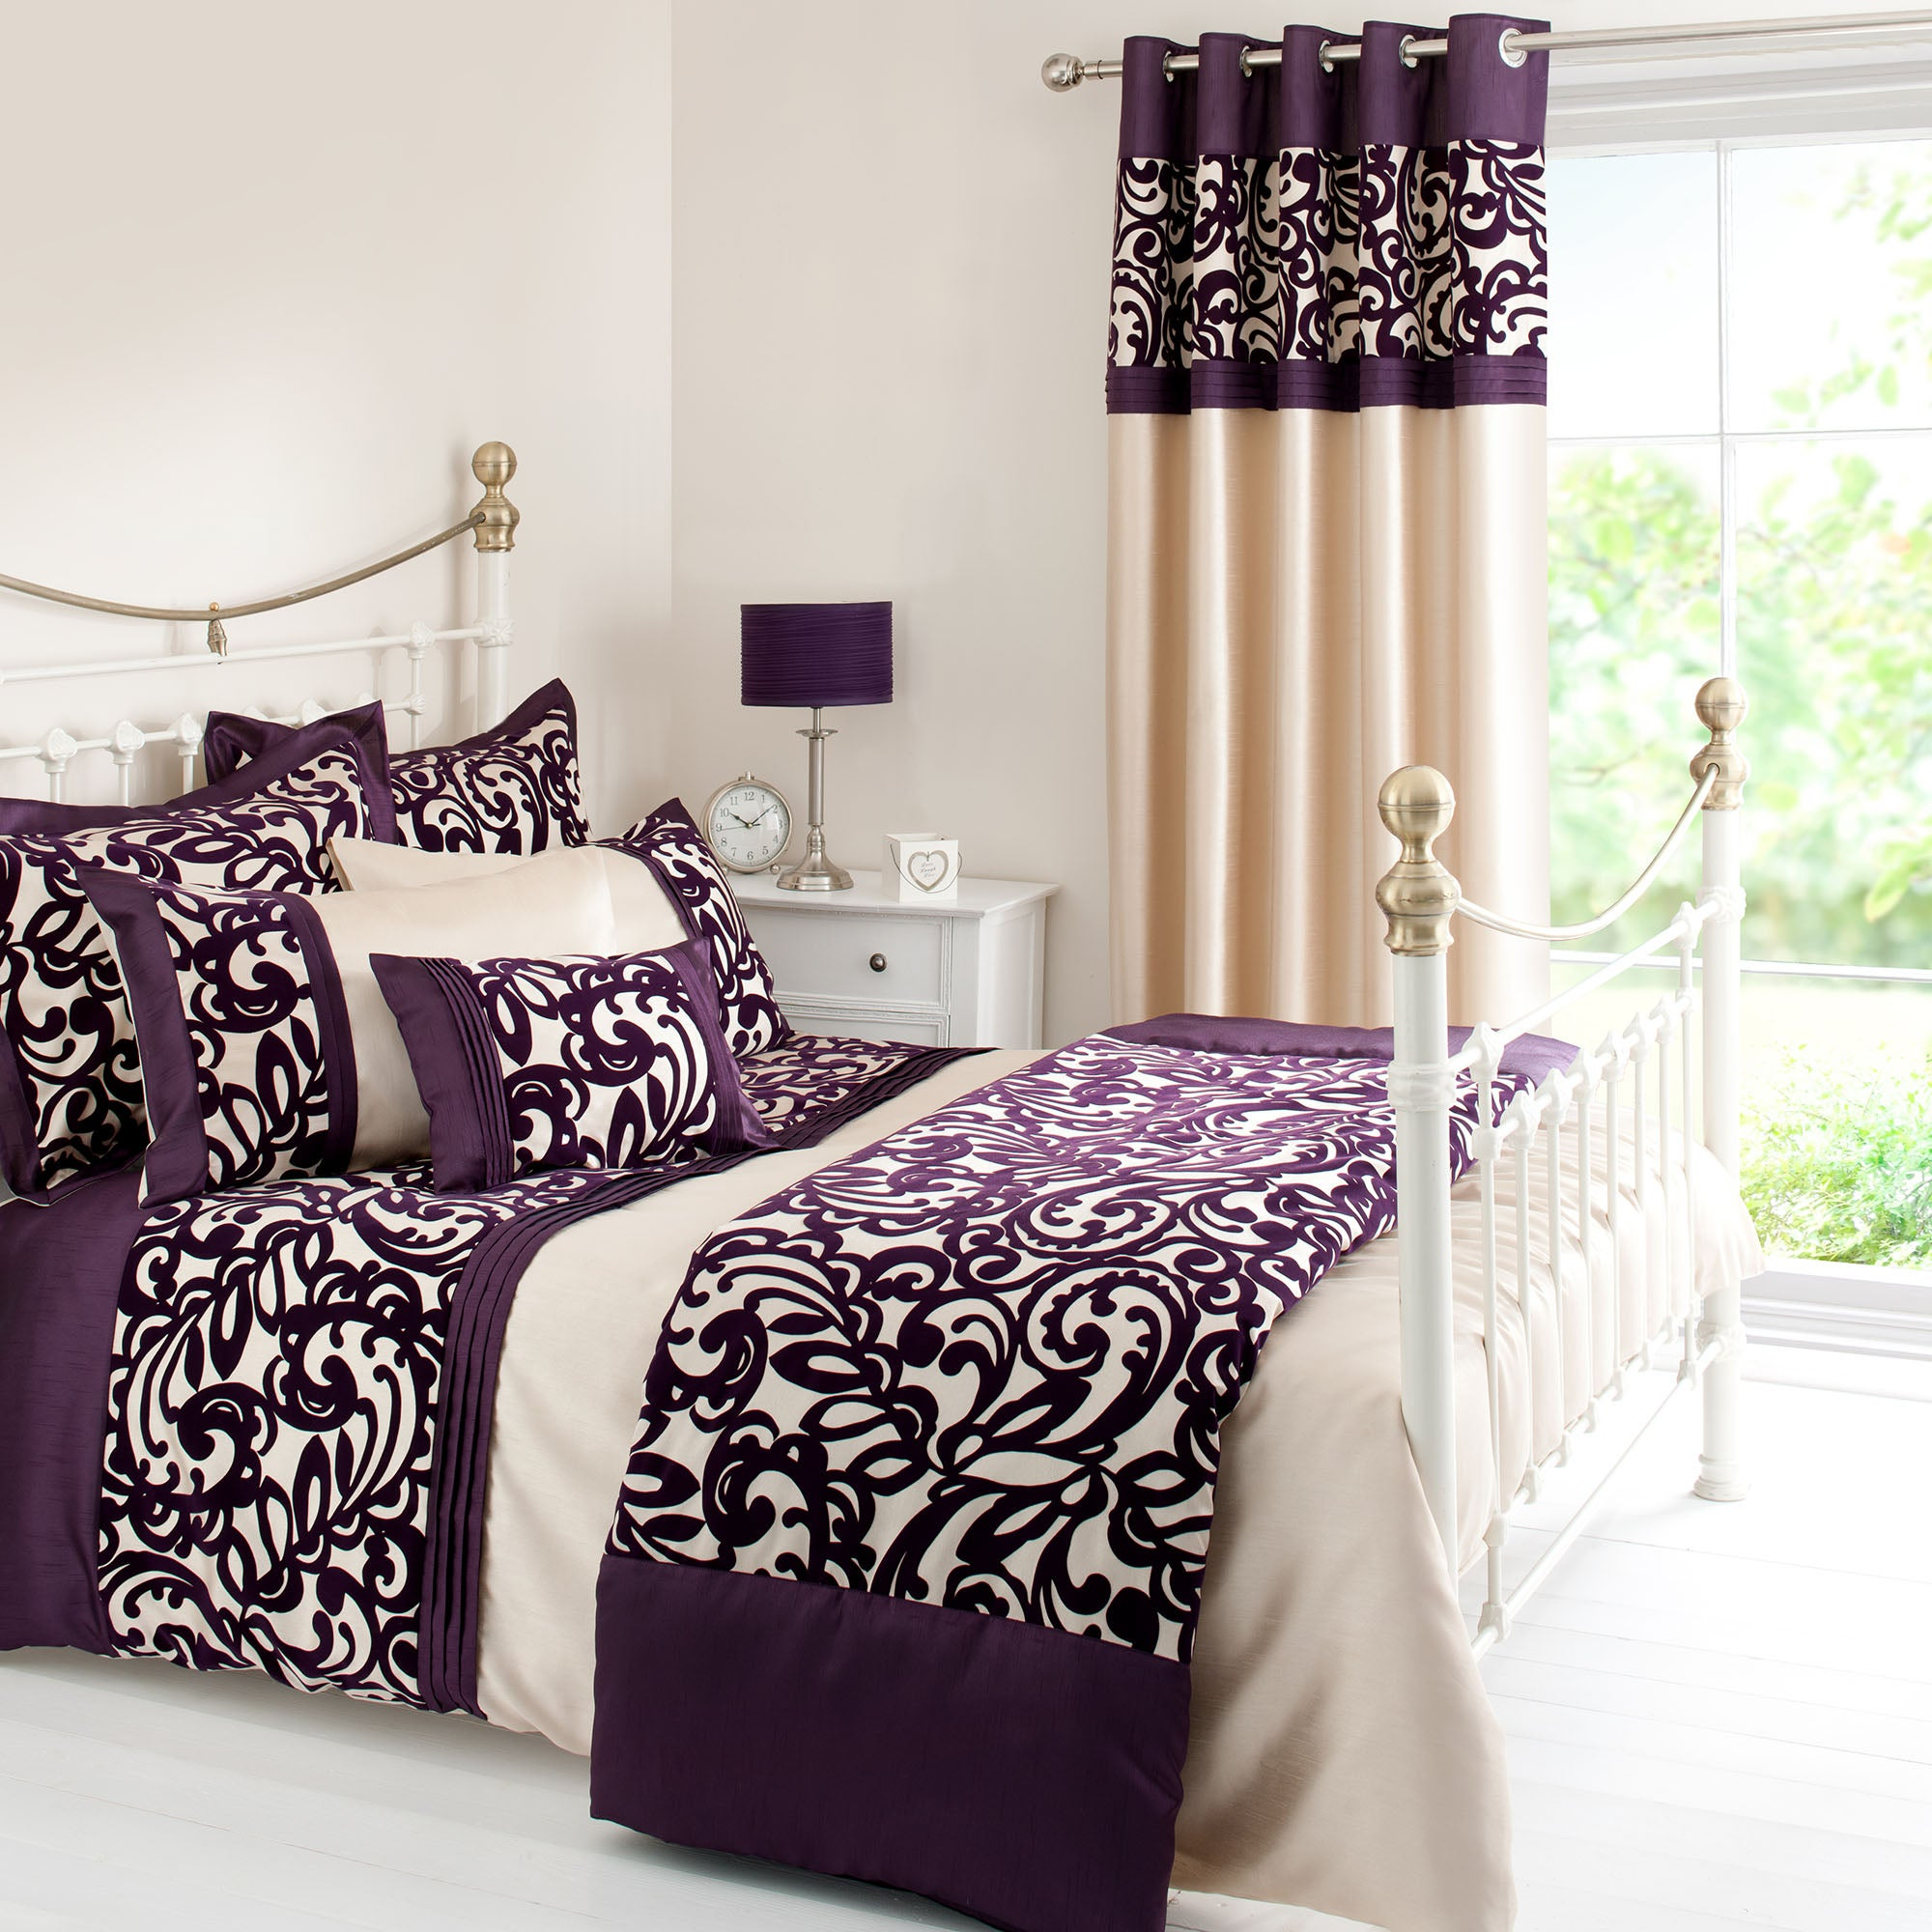 Plum Baroque Flock Collection Duvet Cover